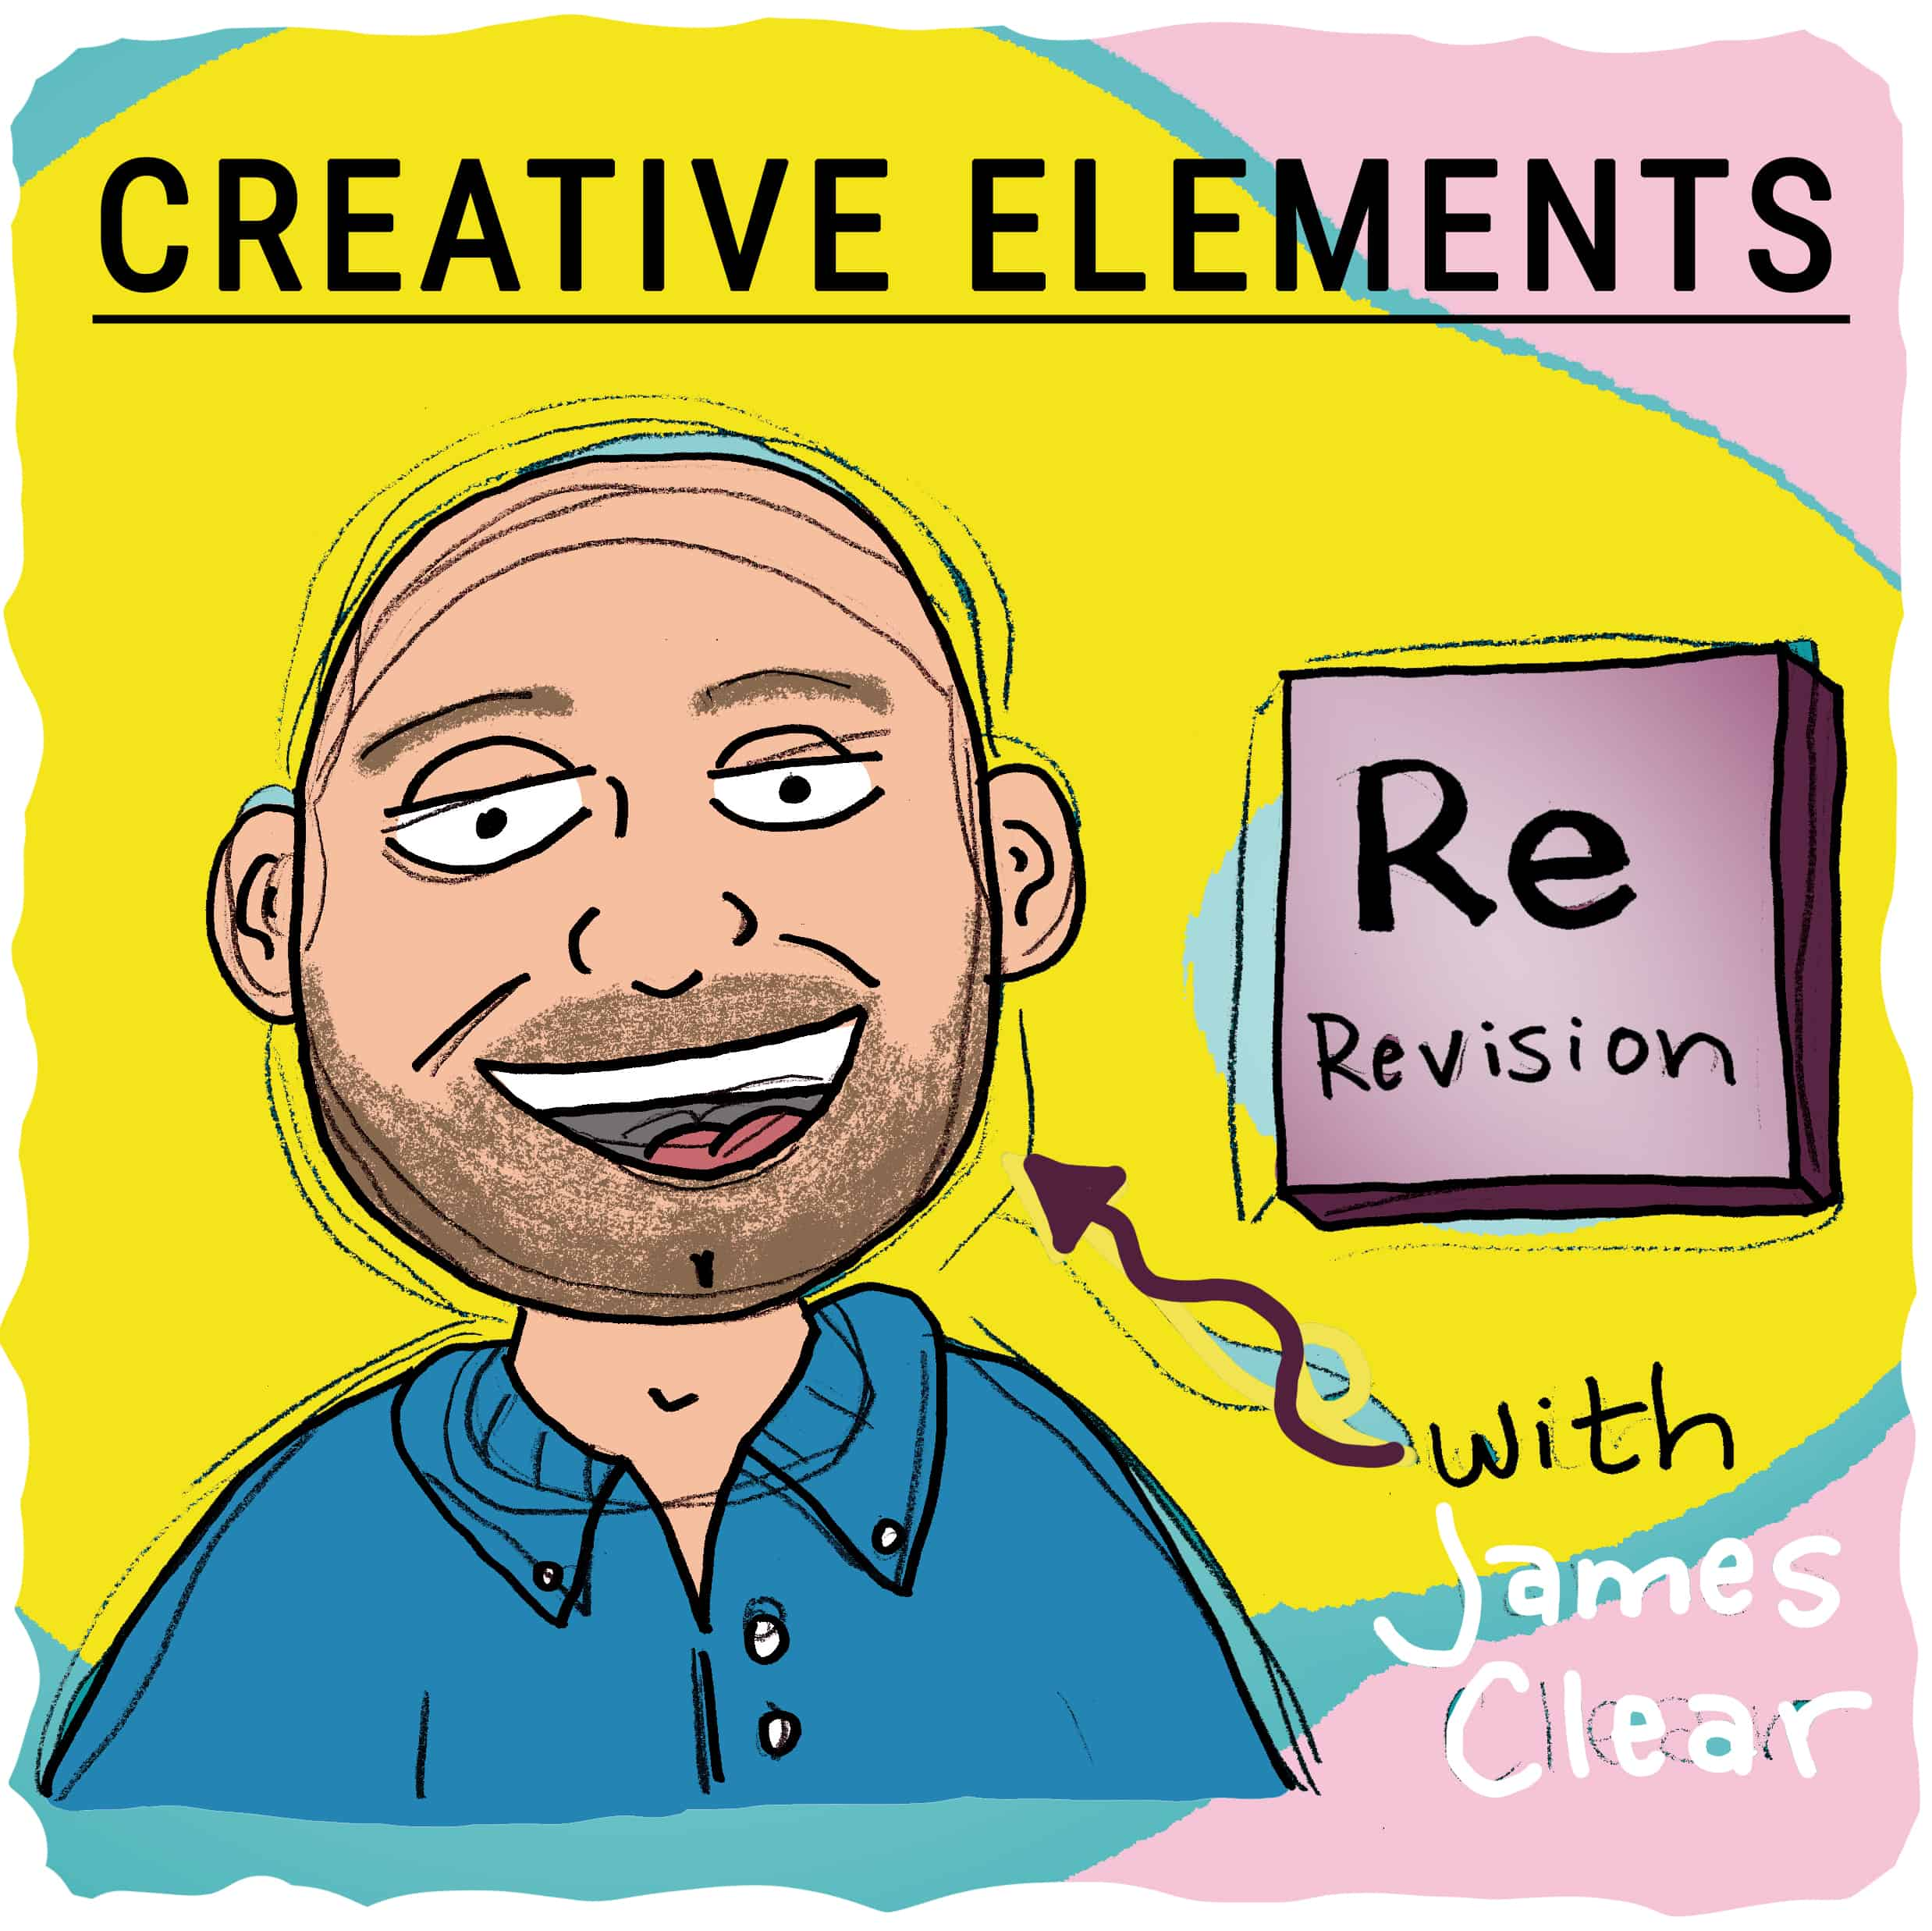 James Clear on Creative Elements